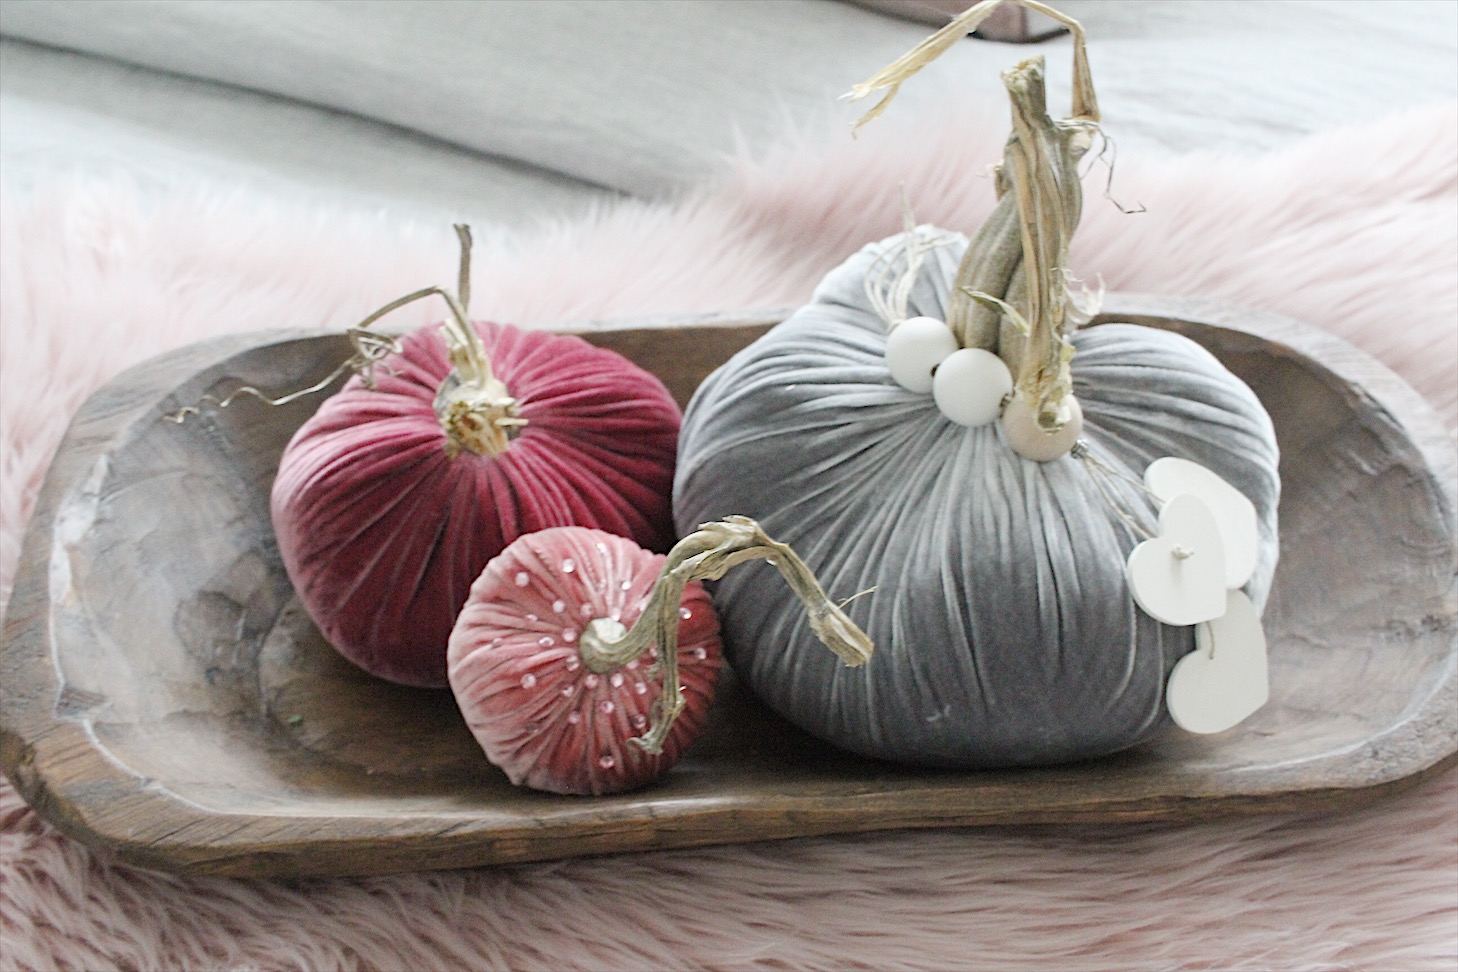 rich jewel tones - Hotskwash velvet pumpkins from Love Feast Shop